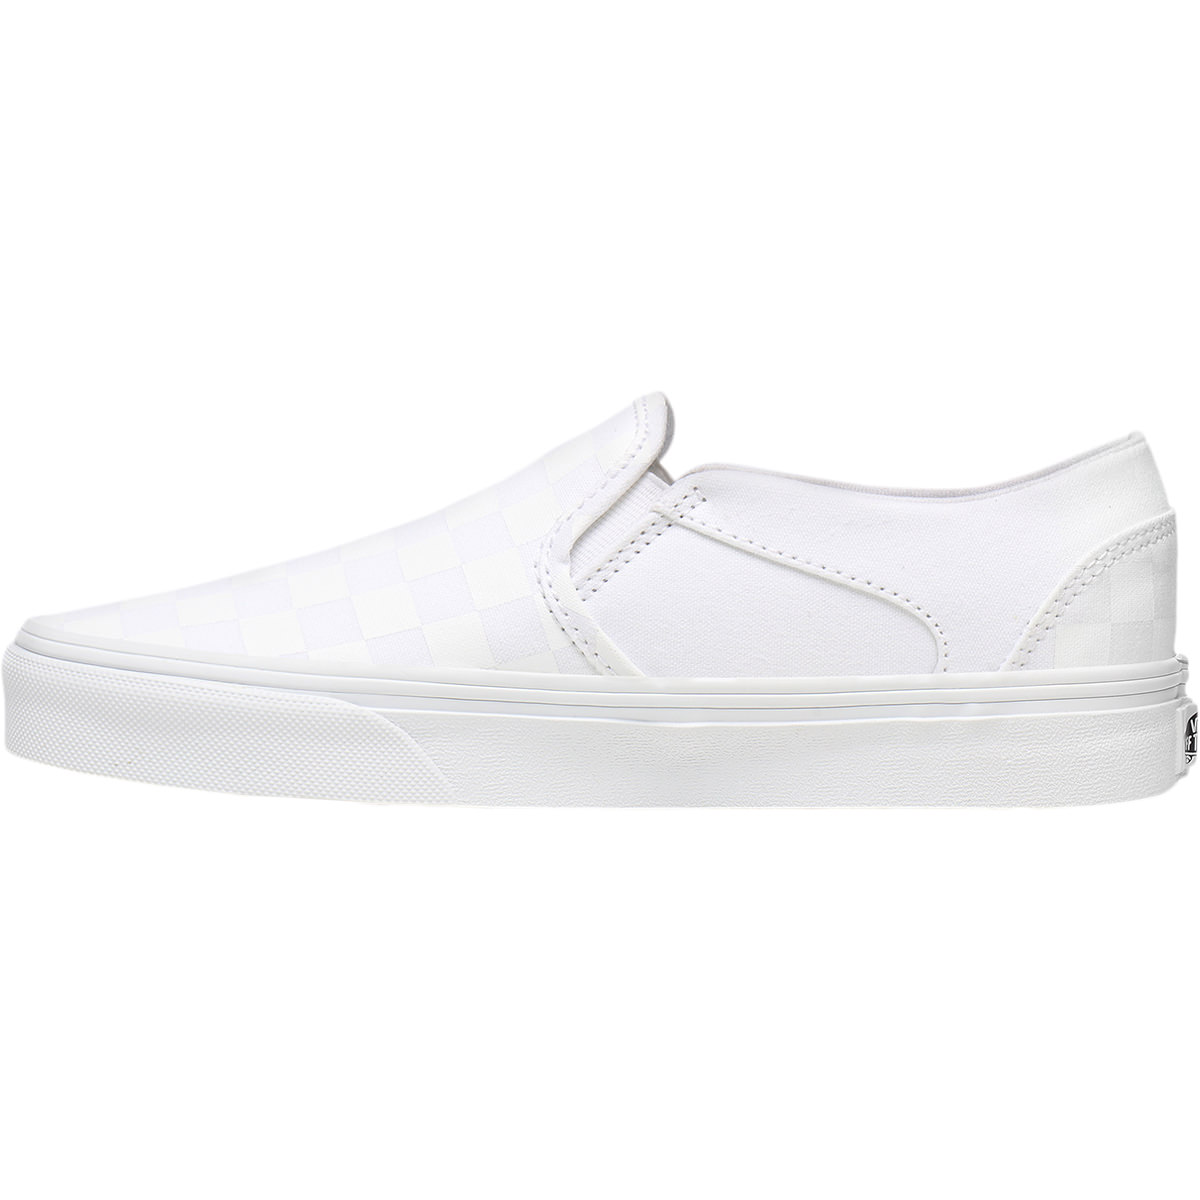 Vans Asher Checkerboard Canvas Slip-On Sneakers Dame